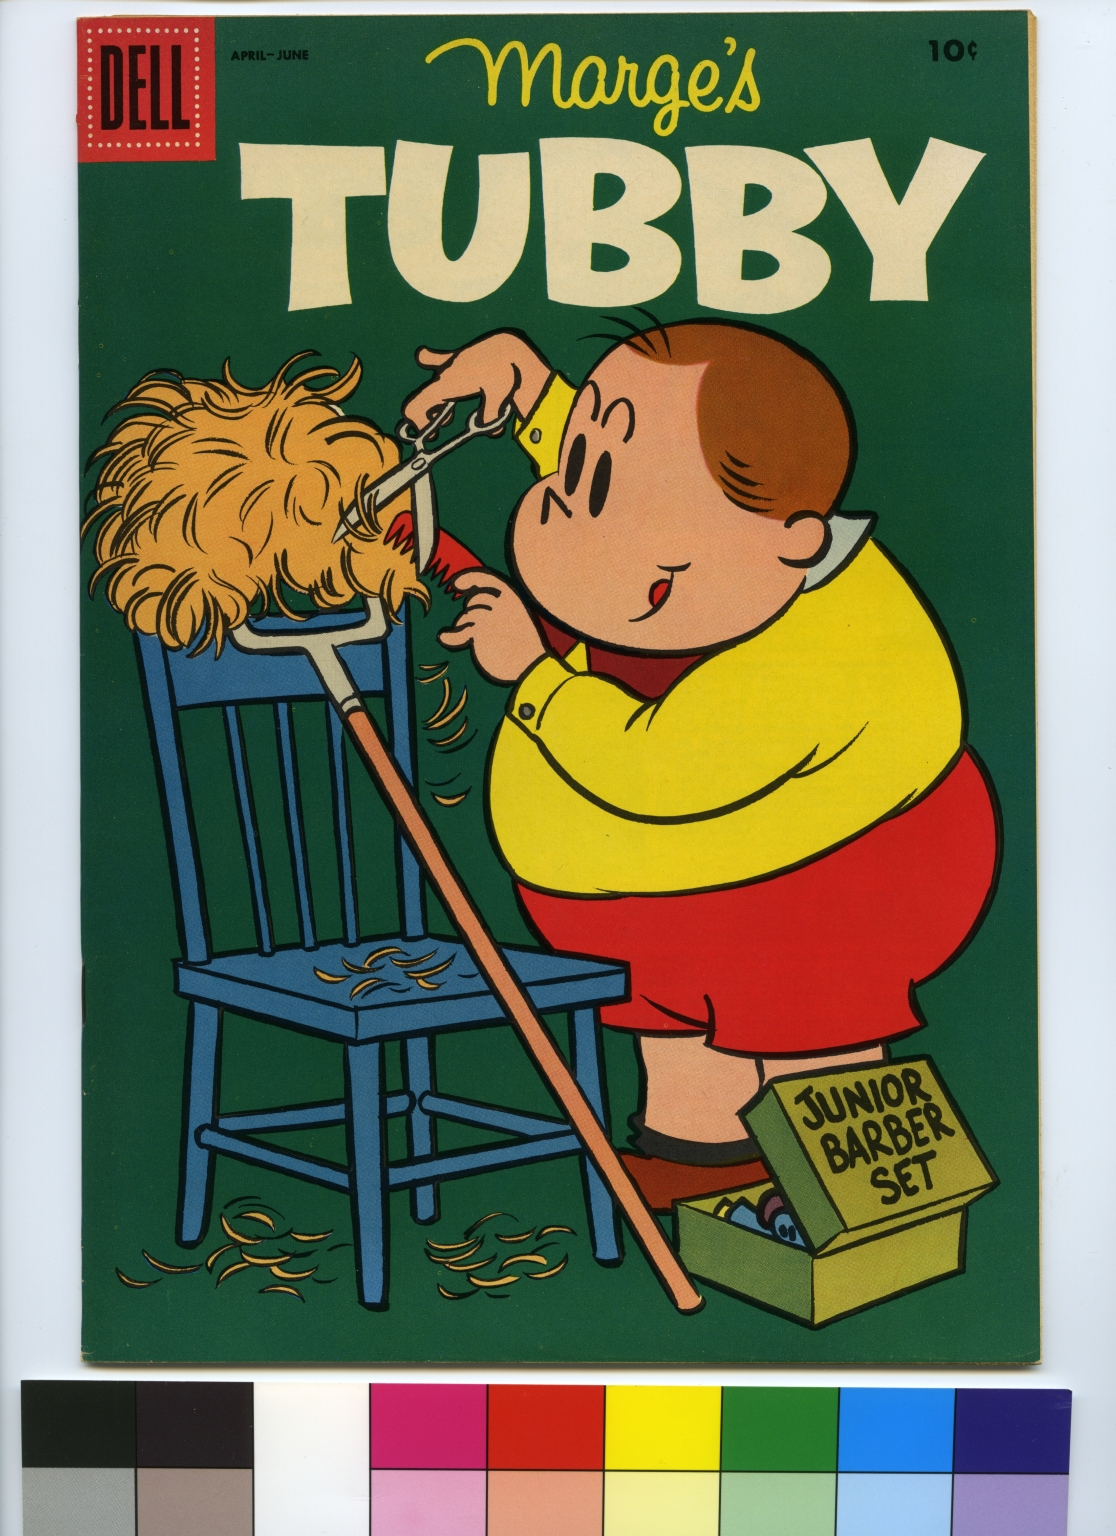 Marge's Tubby